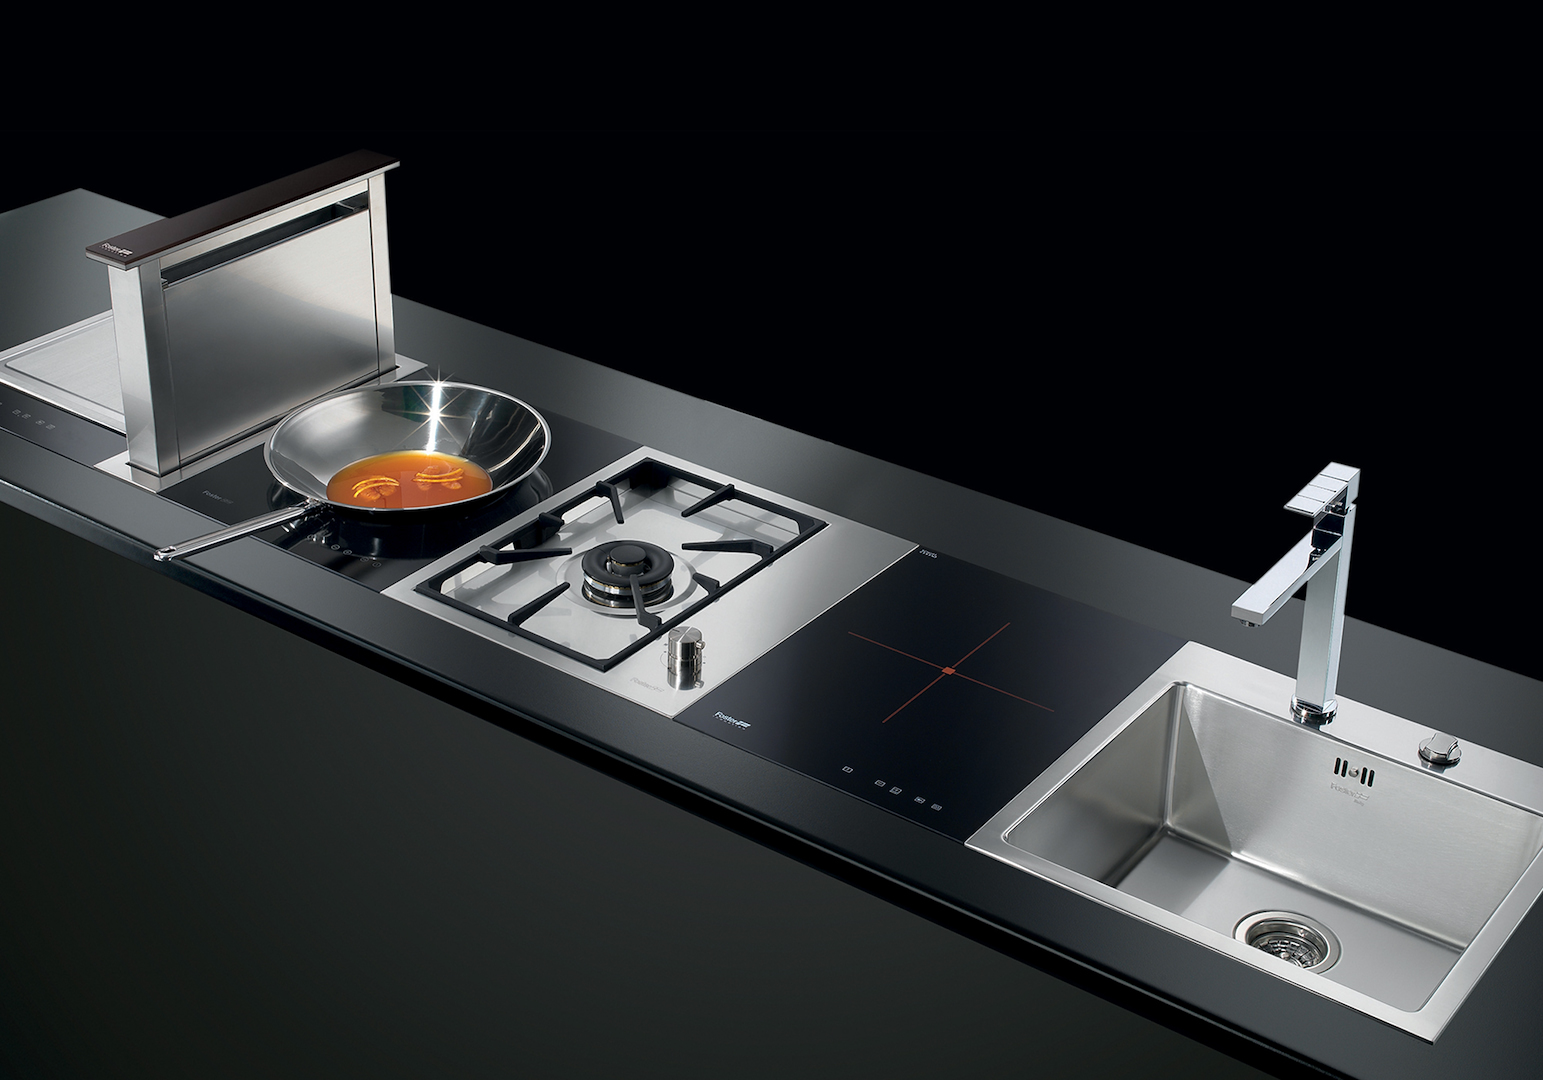 Cooker hob S4000 Domino Induction 7321 240